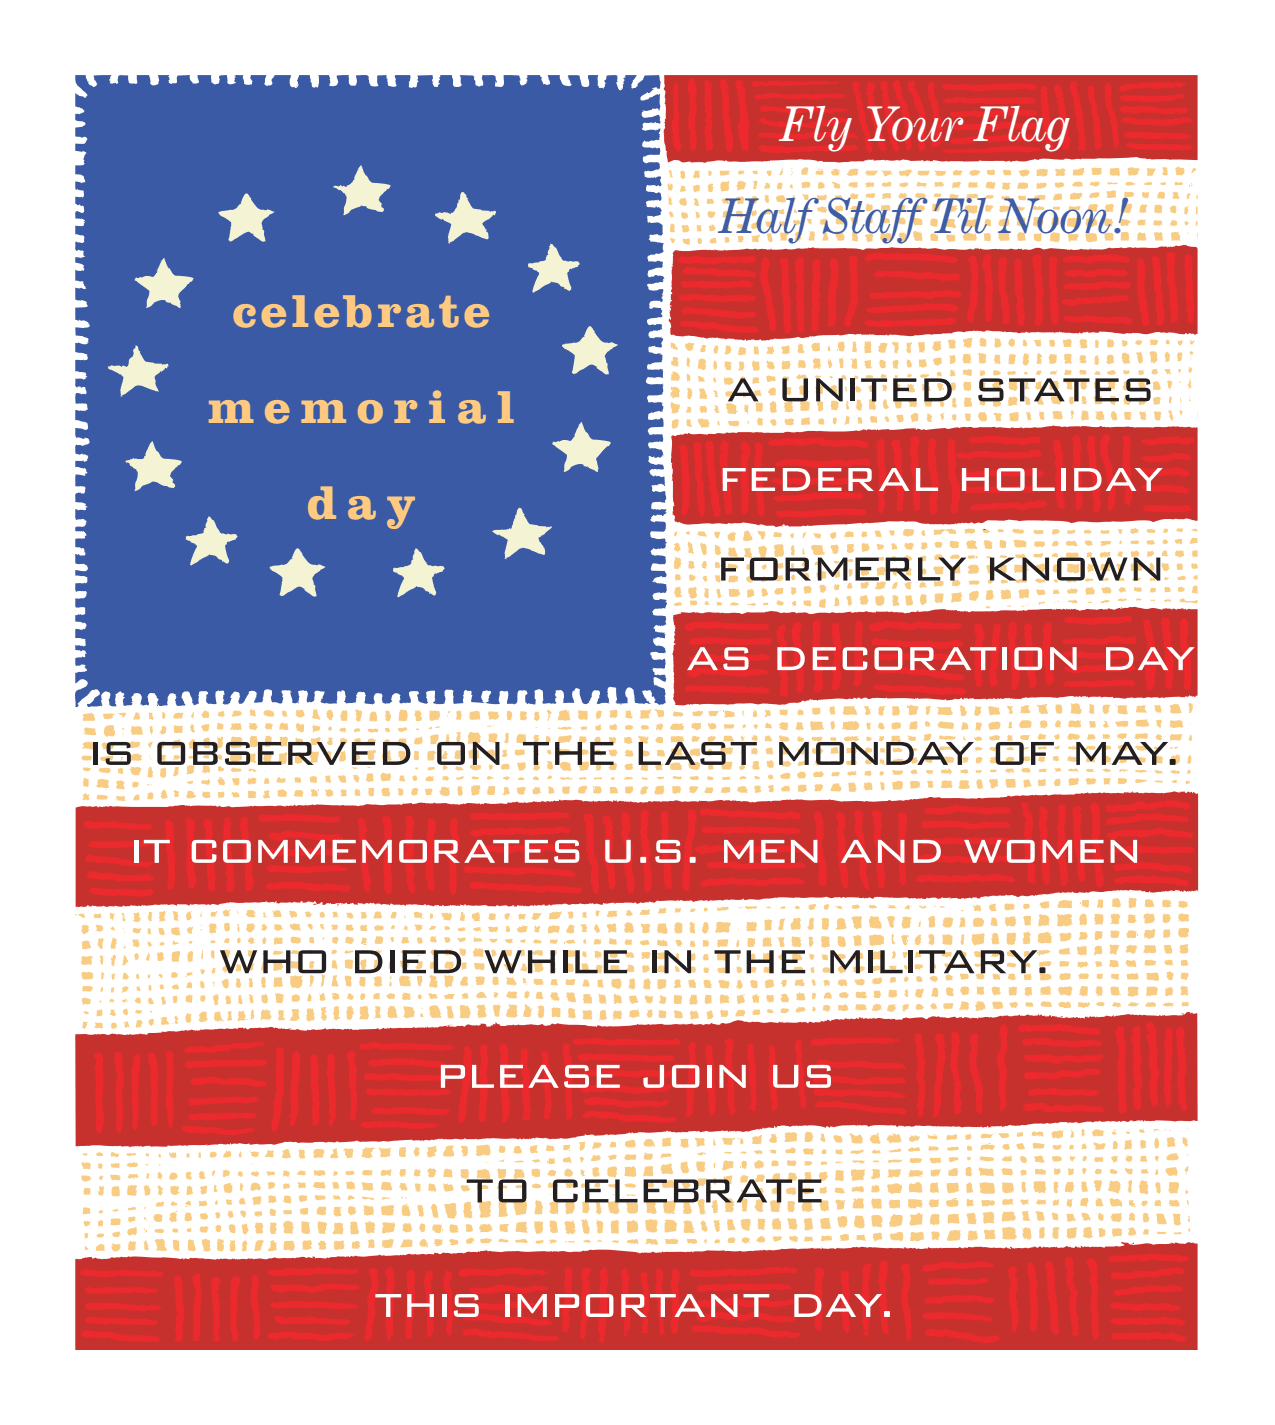 Celebrate Memorial Day - activities at Benton House of Staley Hills in Kansas City, MO